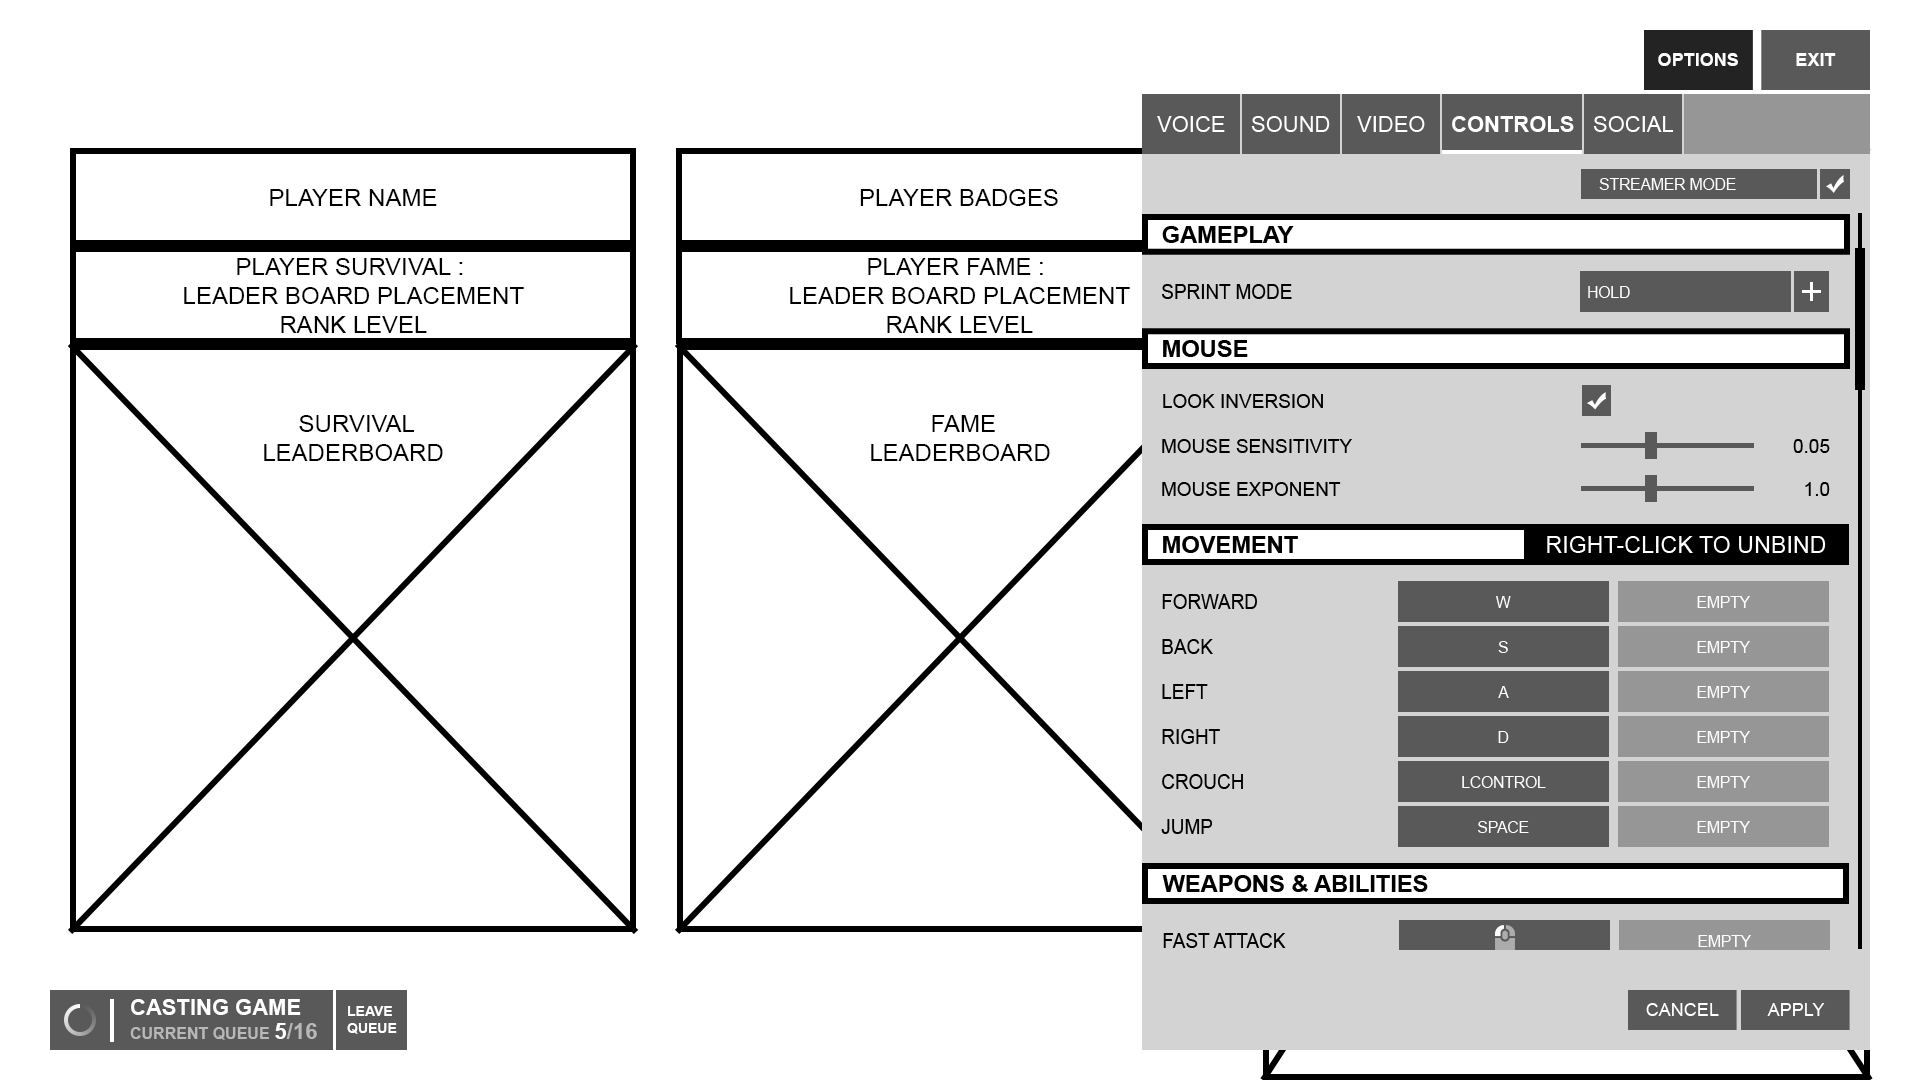 SOS_GameFlow_Wireframes_v4_00_09